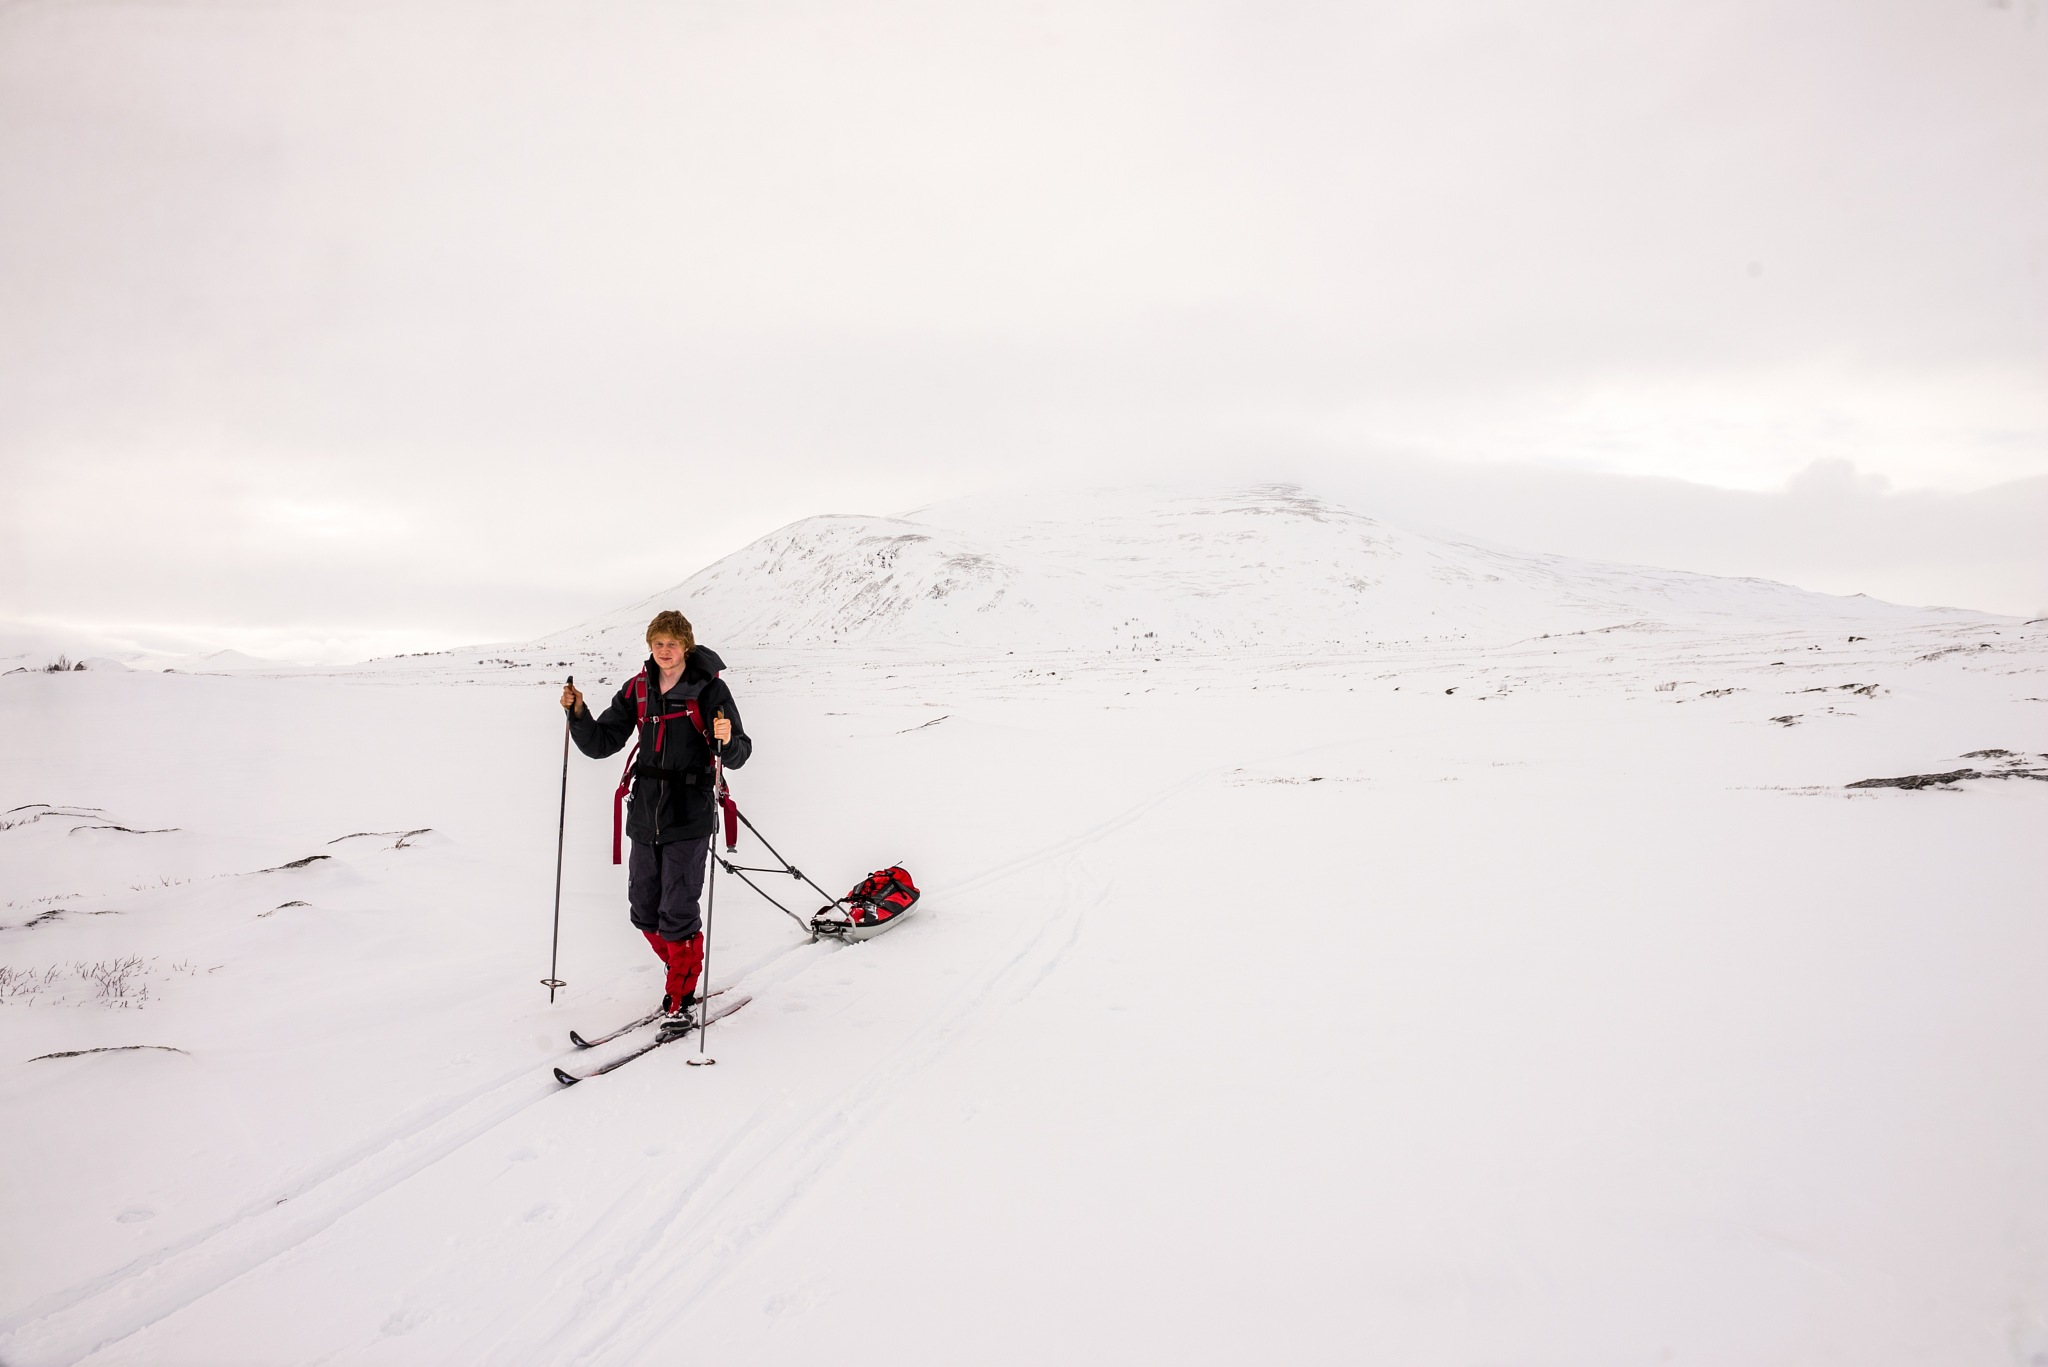 Skiing at Dovre by E Pedersen